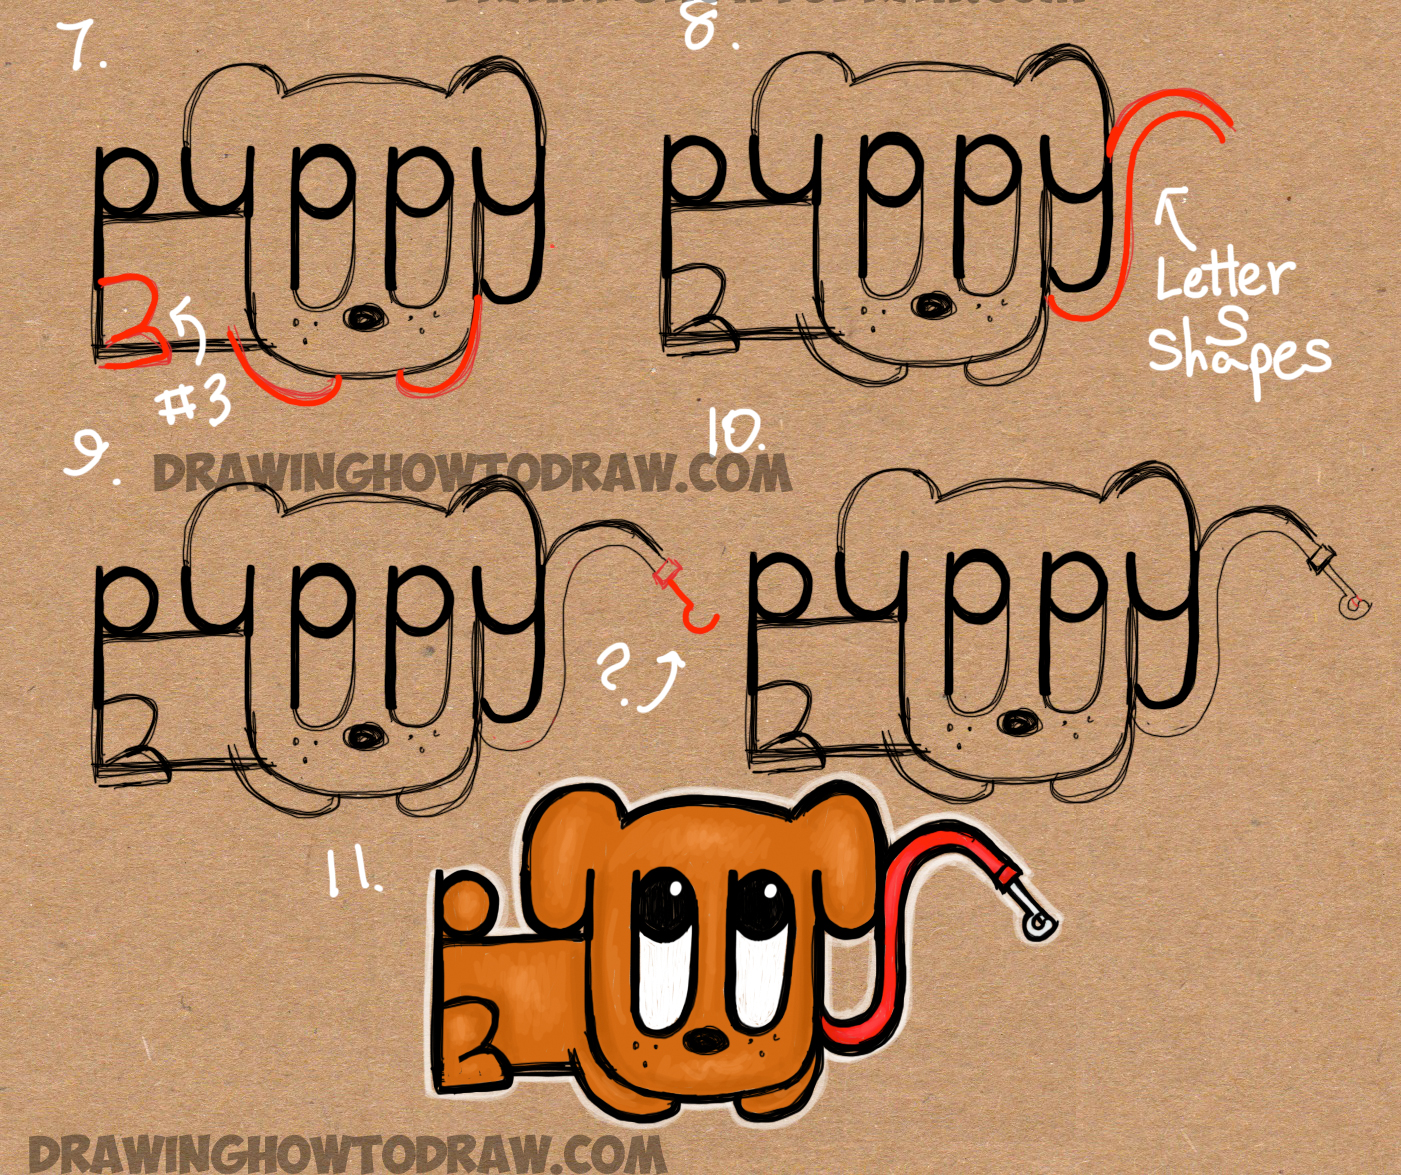 learn how to draw cartoon puppy from the word puppy